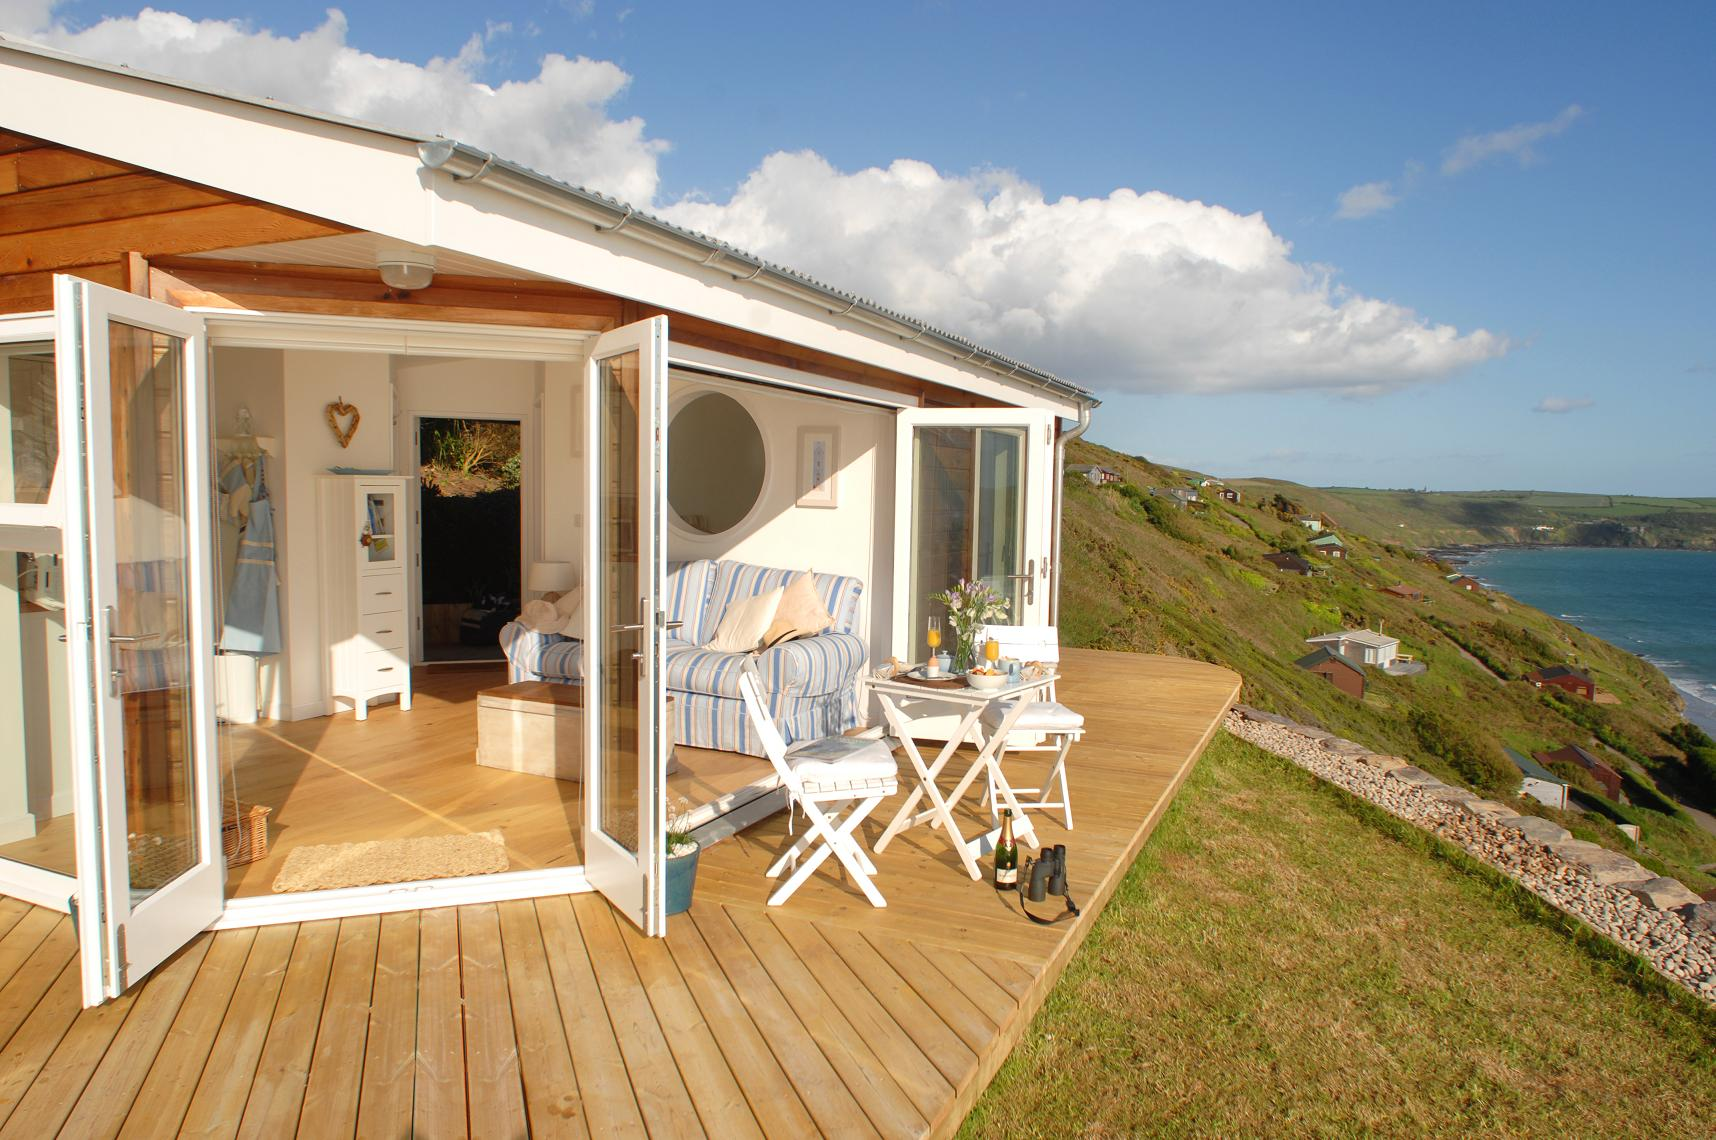 gallery the edge an idyllic beach cottage in cornwall